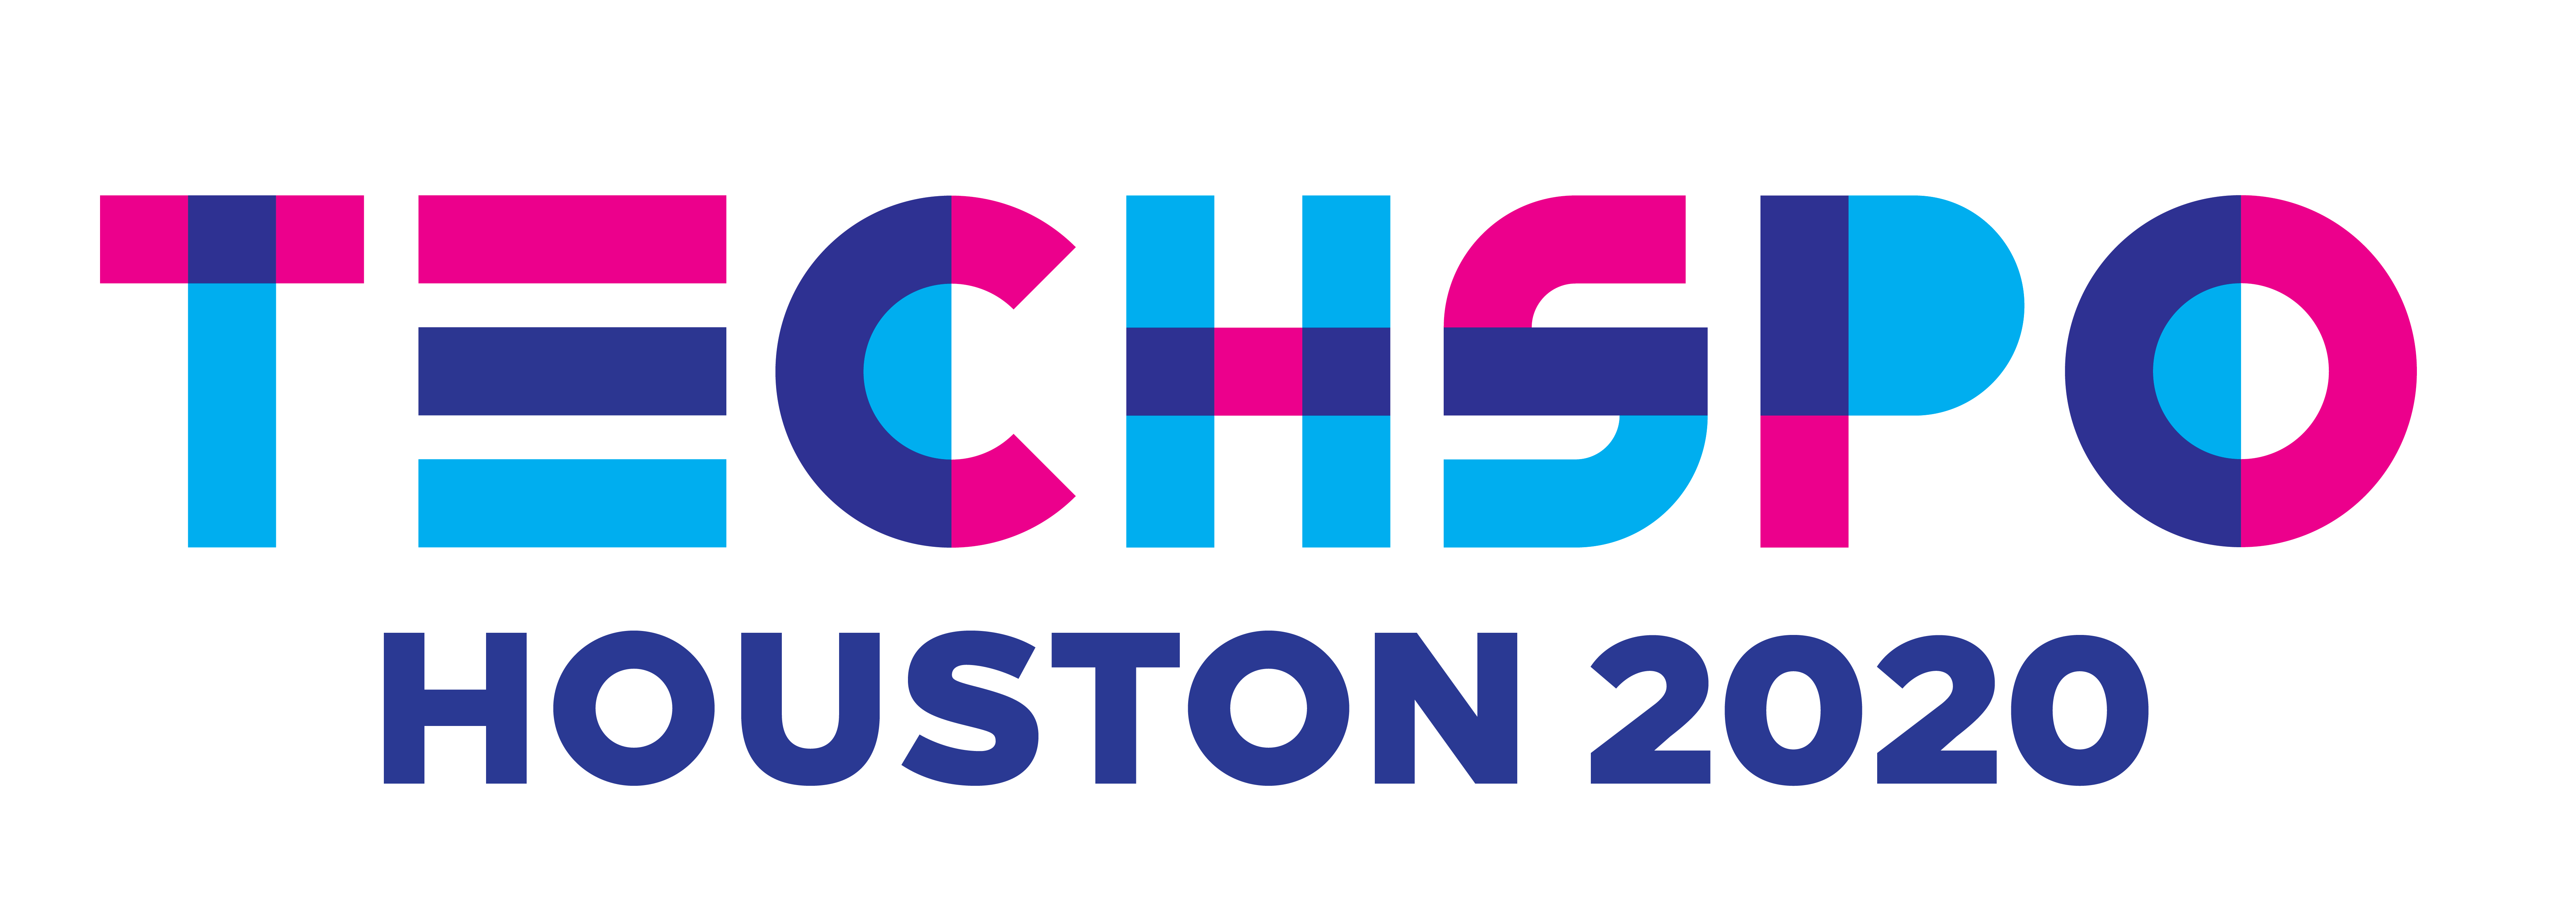 TECHSPO Houston 2020